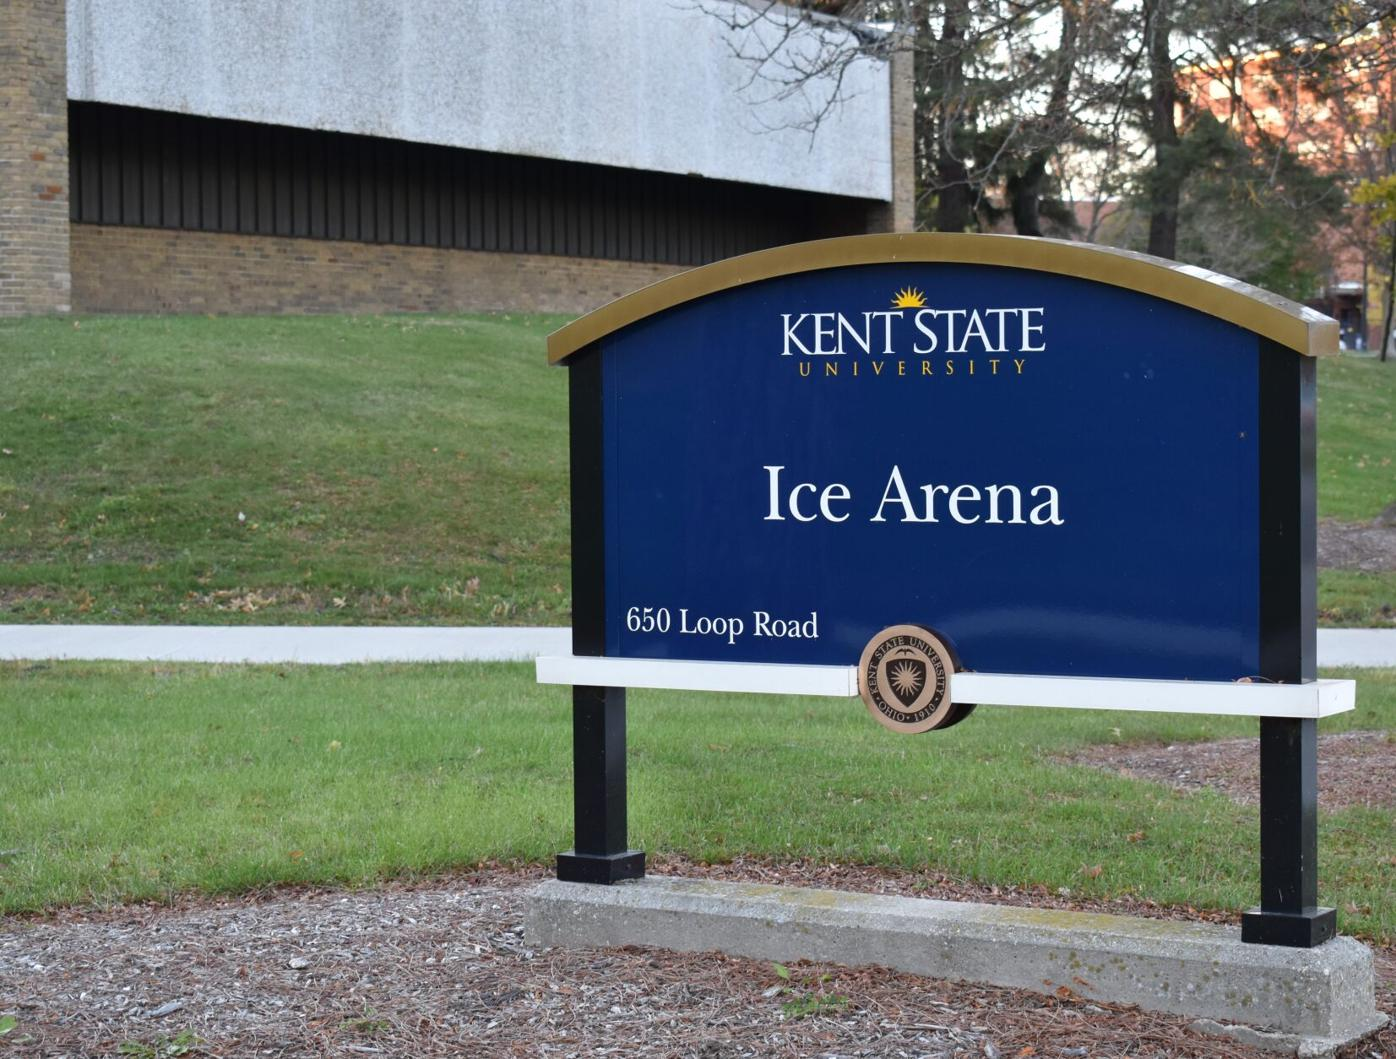 Kent State Ice Arena conversion sparks local discourse over ice time